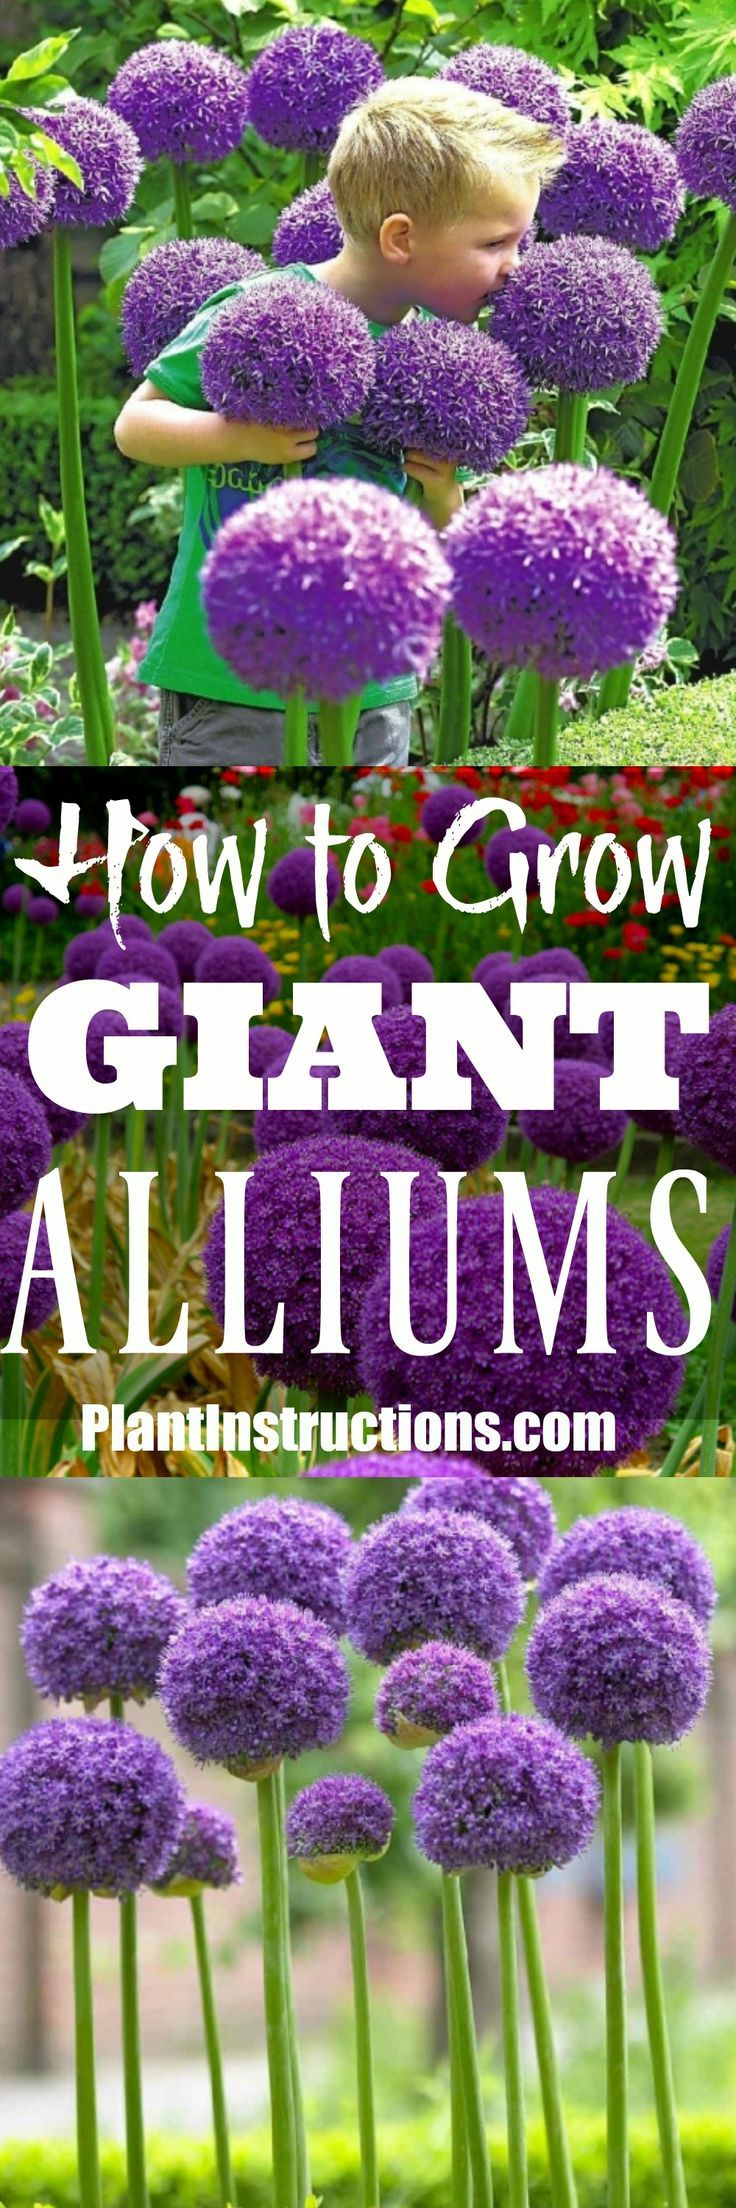 How To Grow Giant Alliums Allium Flowers Plants Planting Flowers